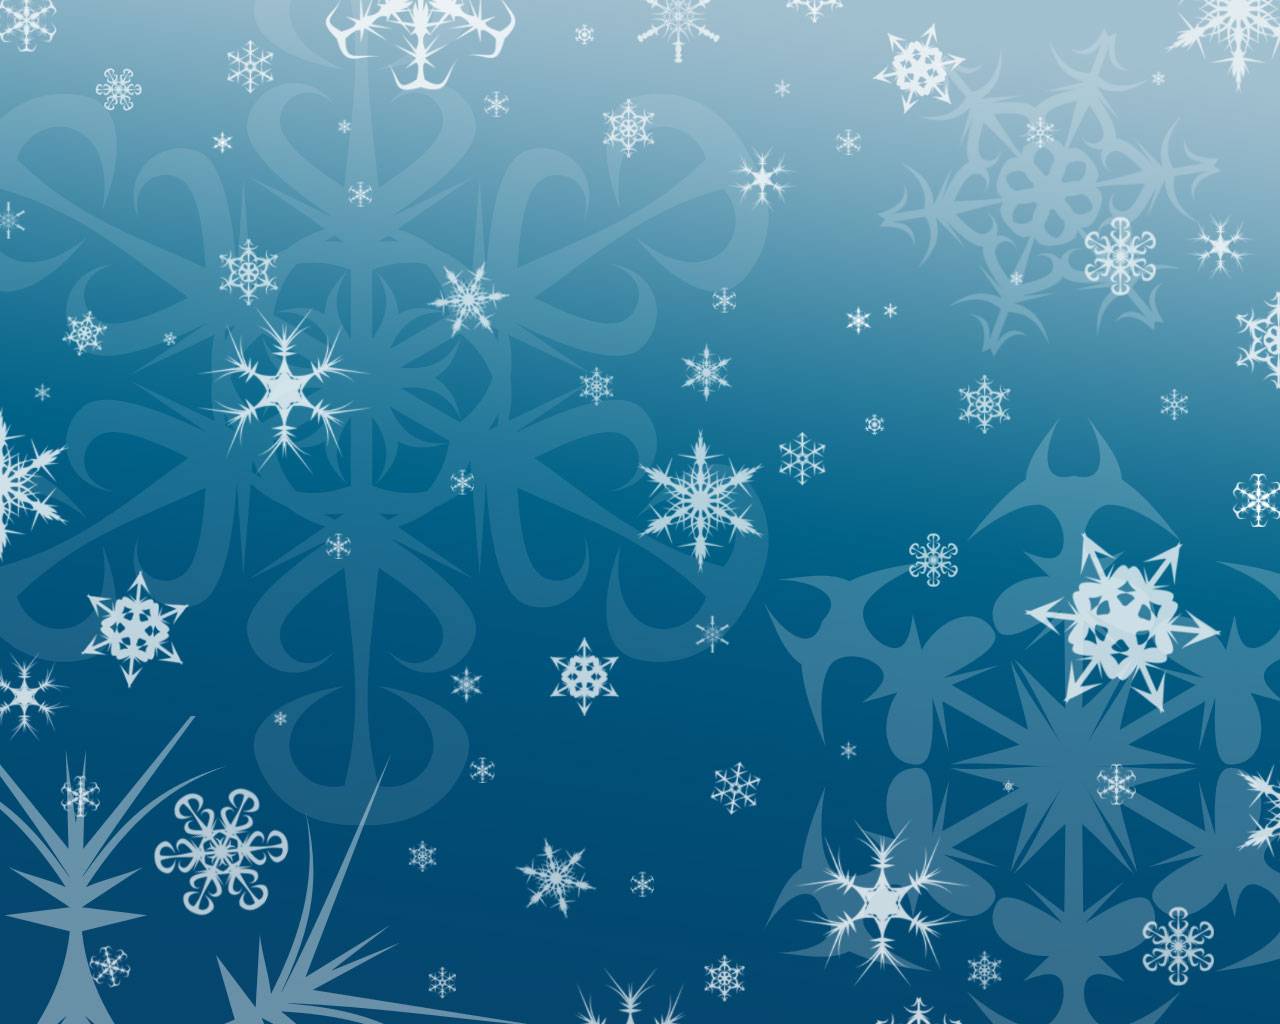 Winter Effbomb Download Wallpapers For Desktop Backgrounds HD 1280x1024